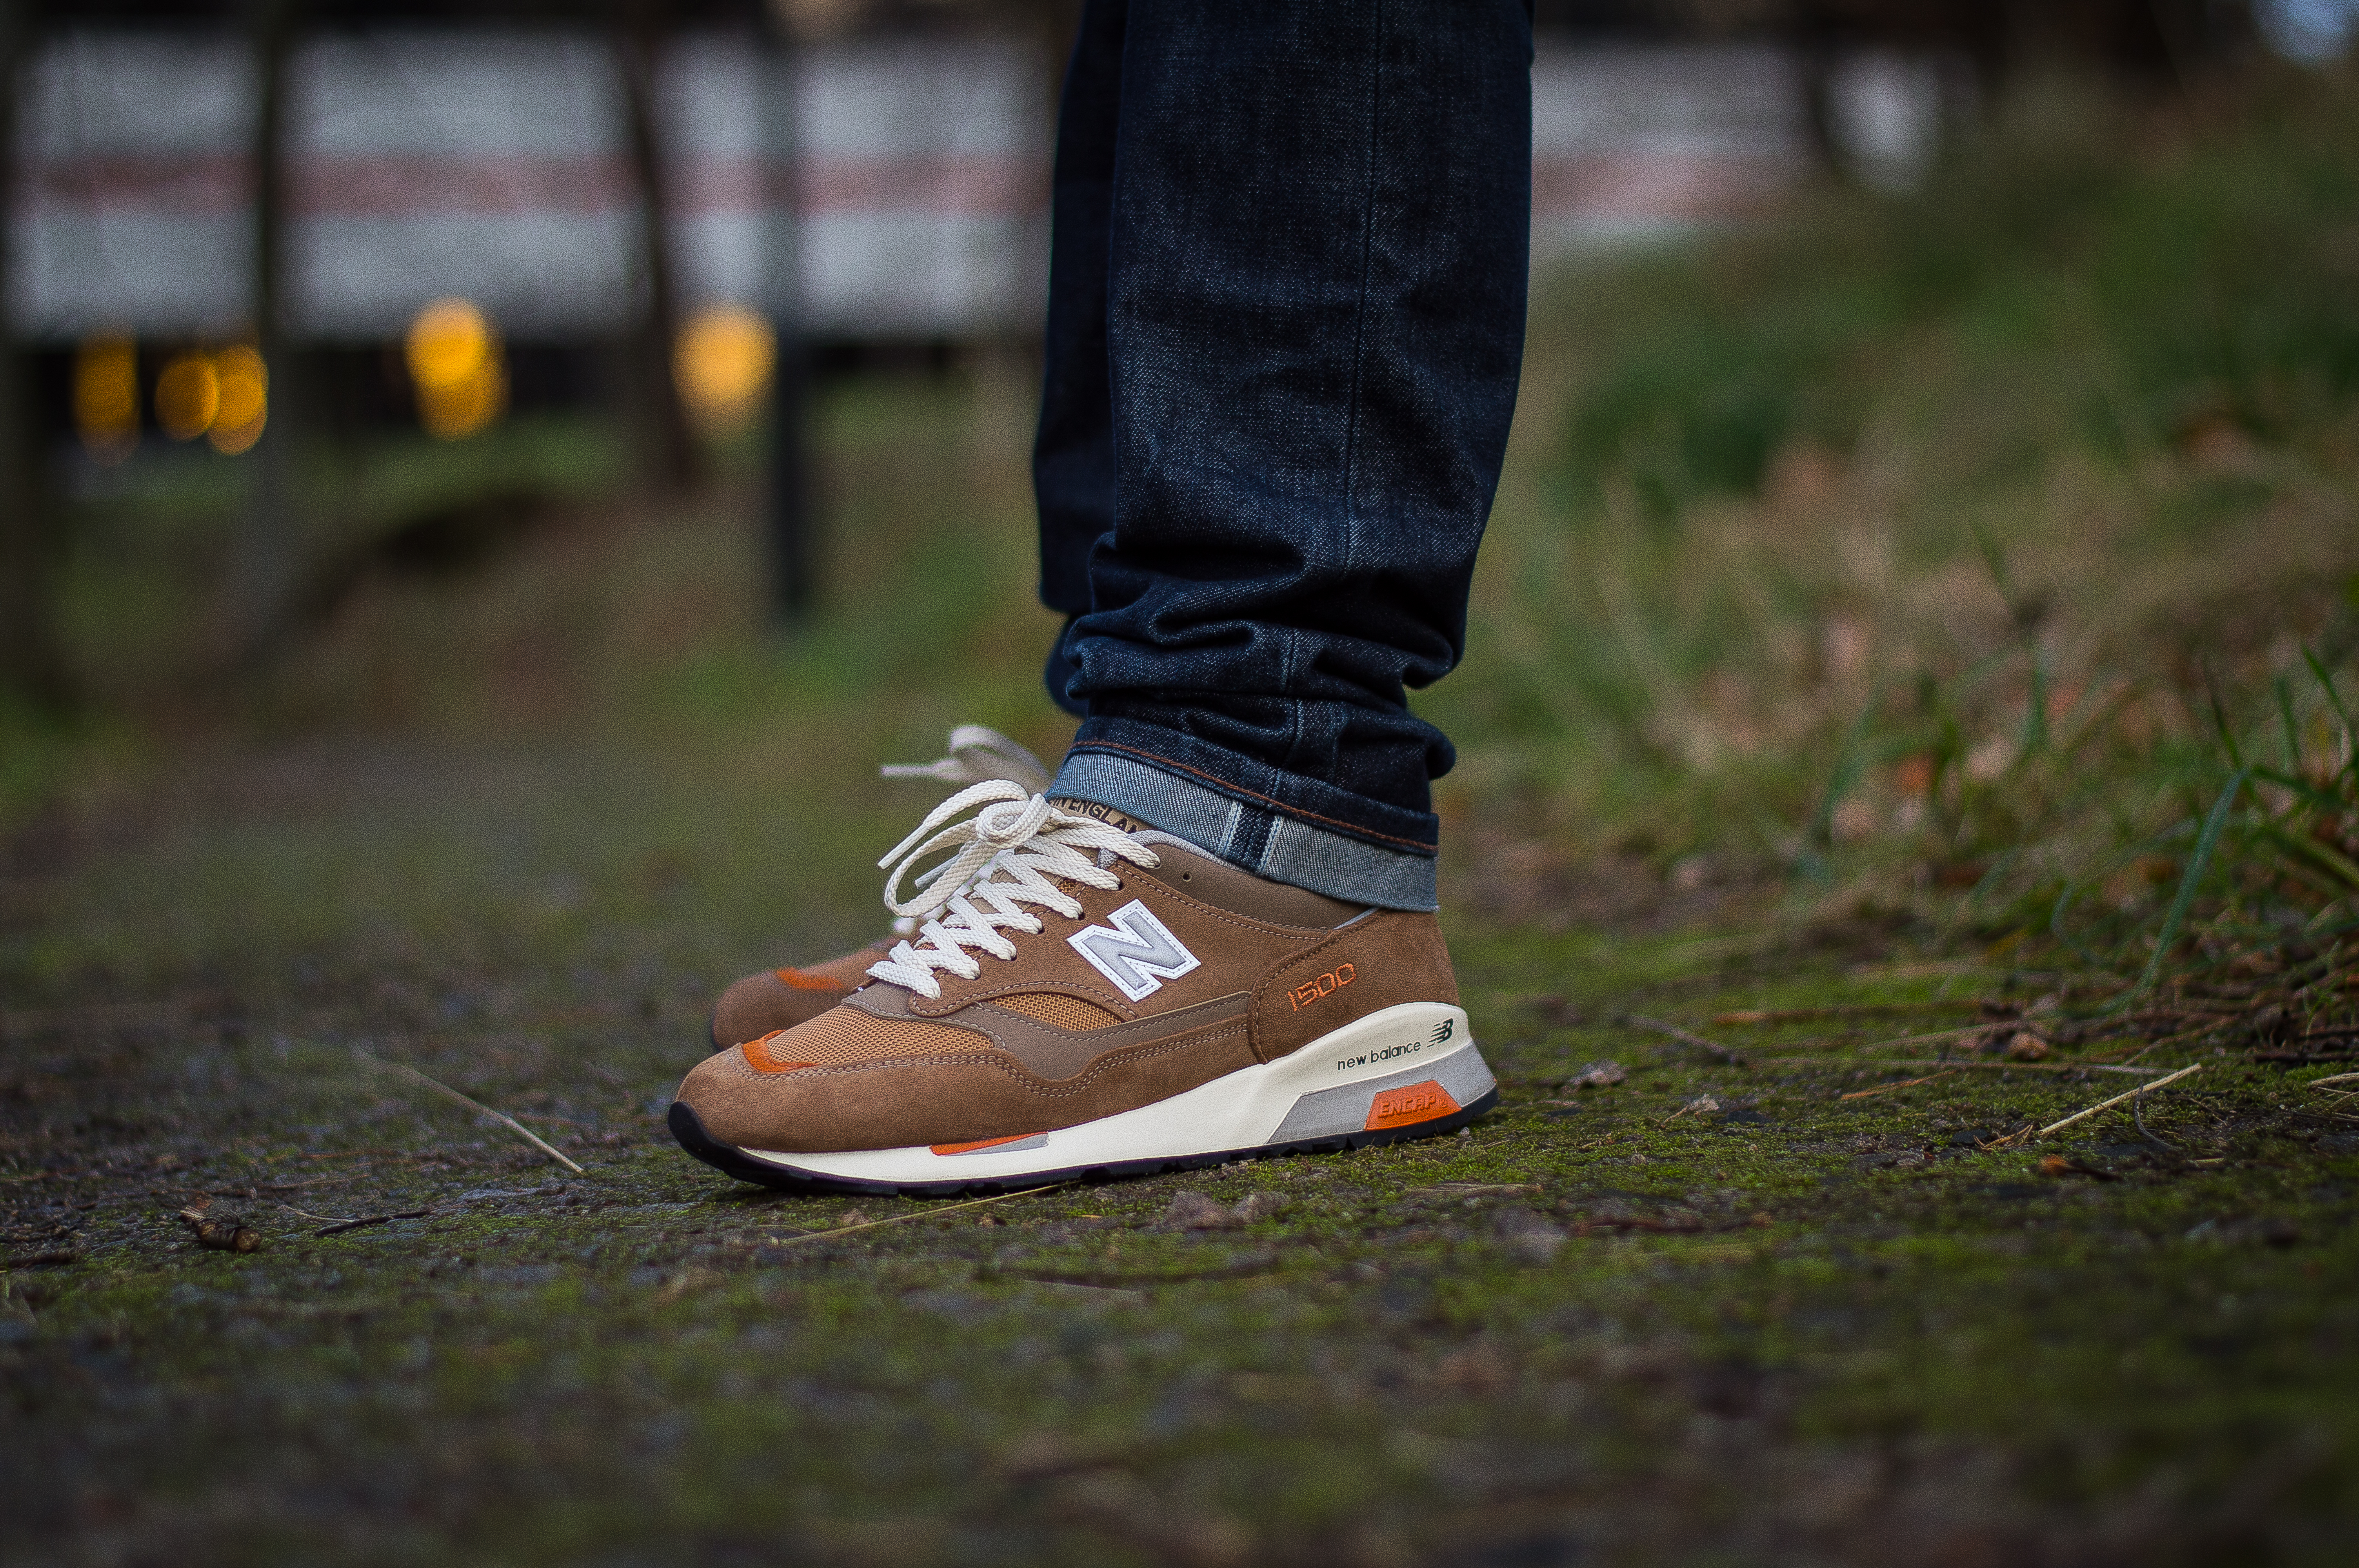 new balance 1500 x norse projects